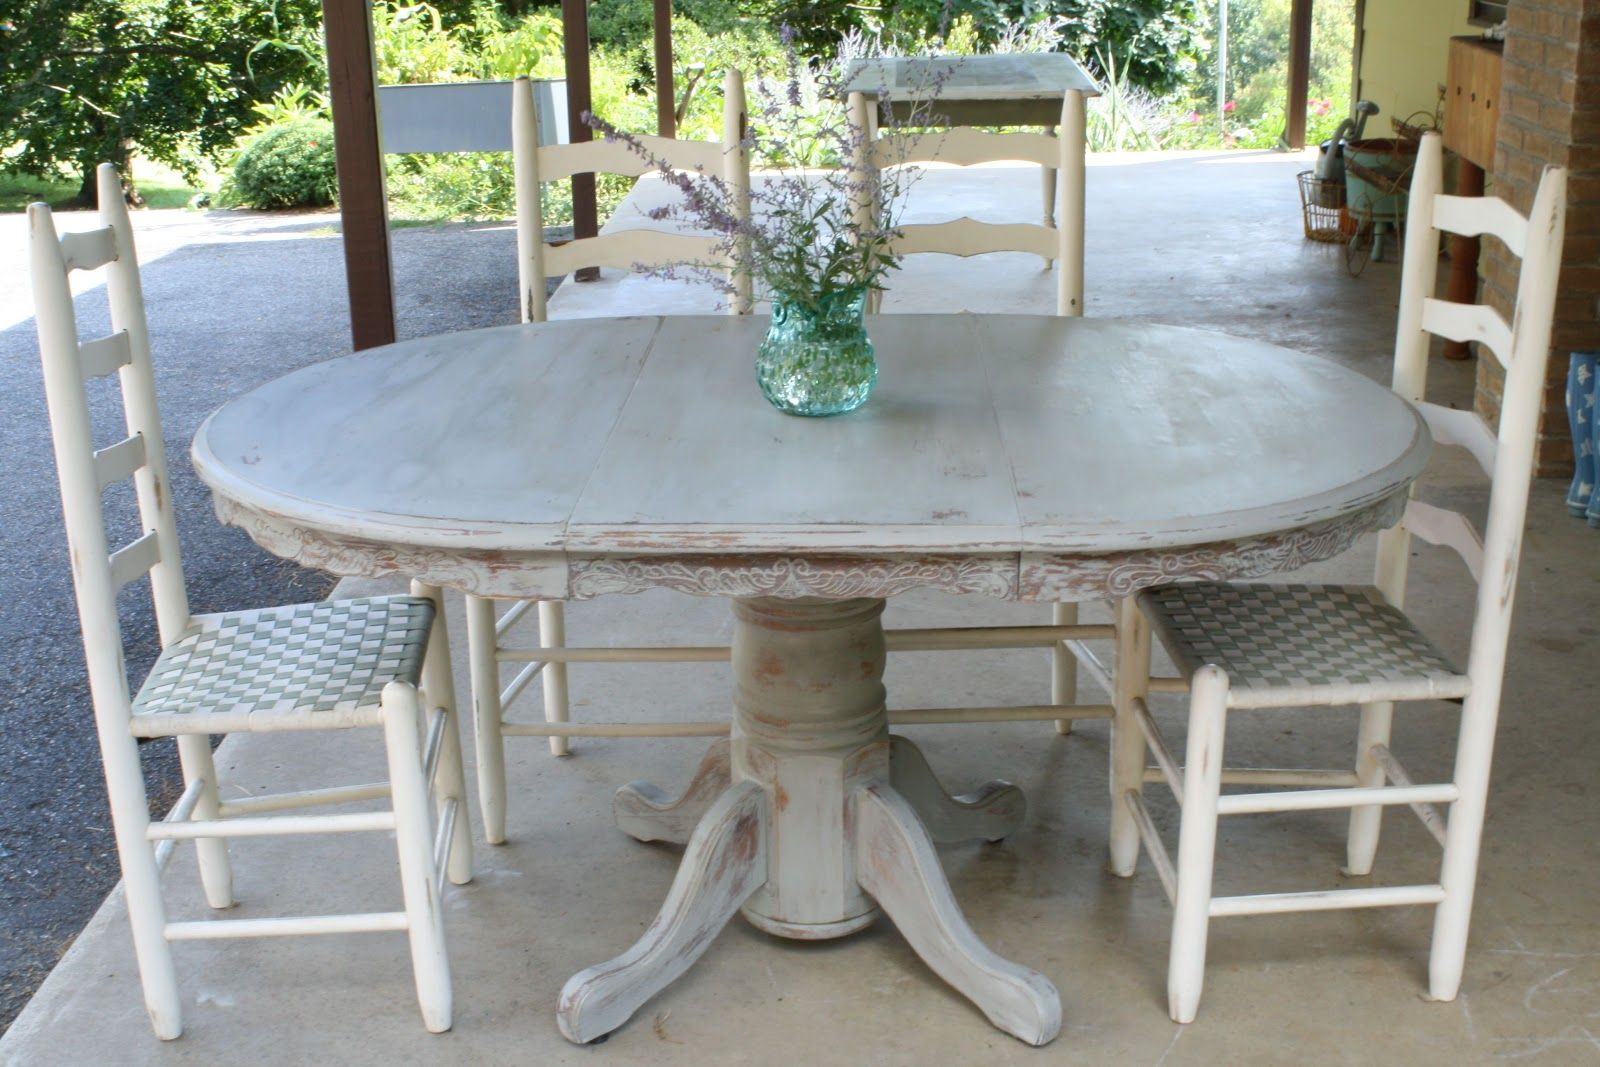 Primitive & Proper: Weathered Paris Gray Dining Table how melted wax ...